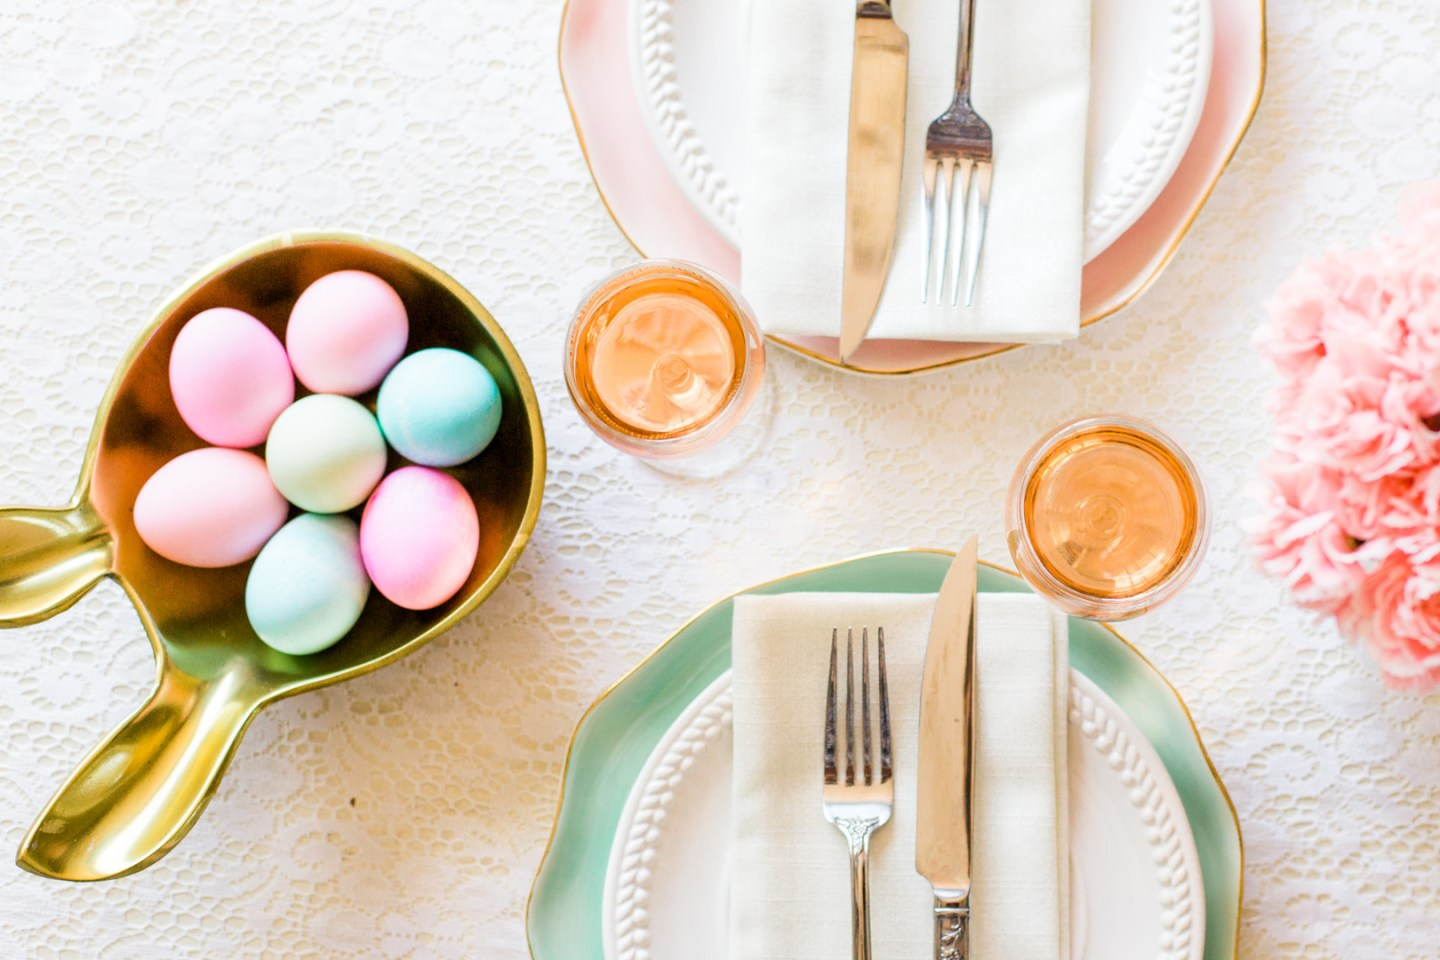 Staal_KristinaStaalPhotography_KristinaStaalPhotographyEasterTablescape20164_big Easy Entertaining: Easter Brunch Inspiration for Two